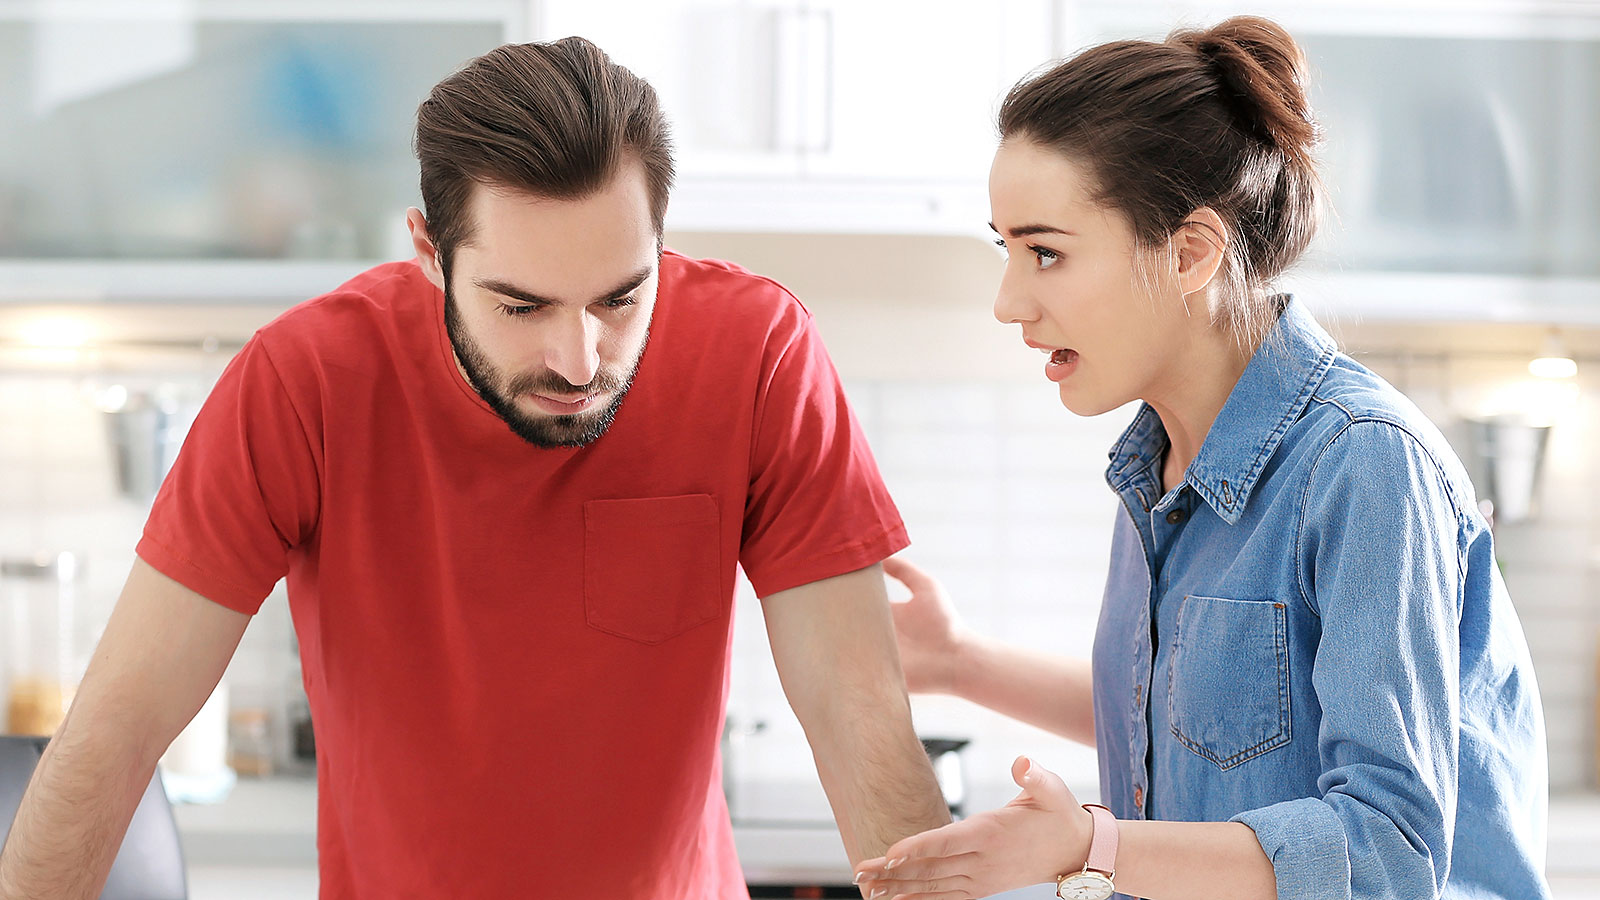 7 signs your job is ruining your relationship